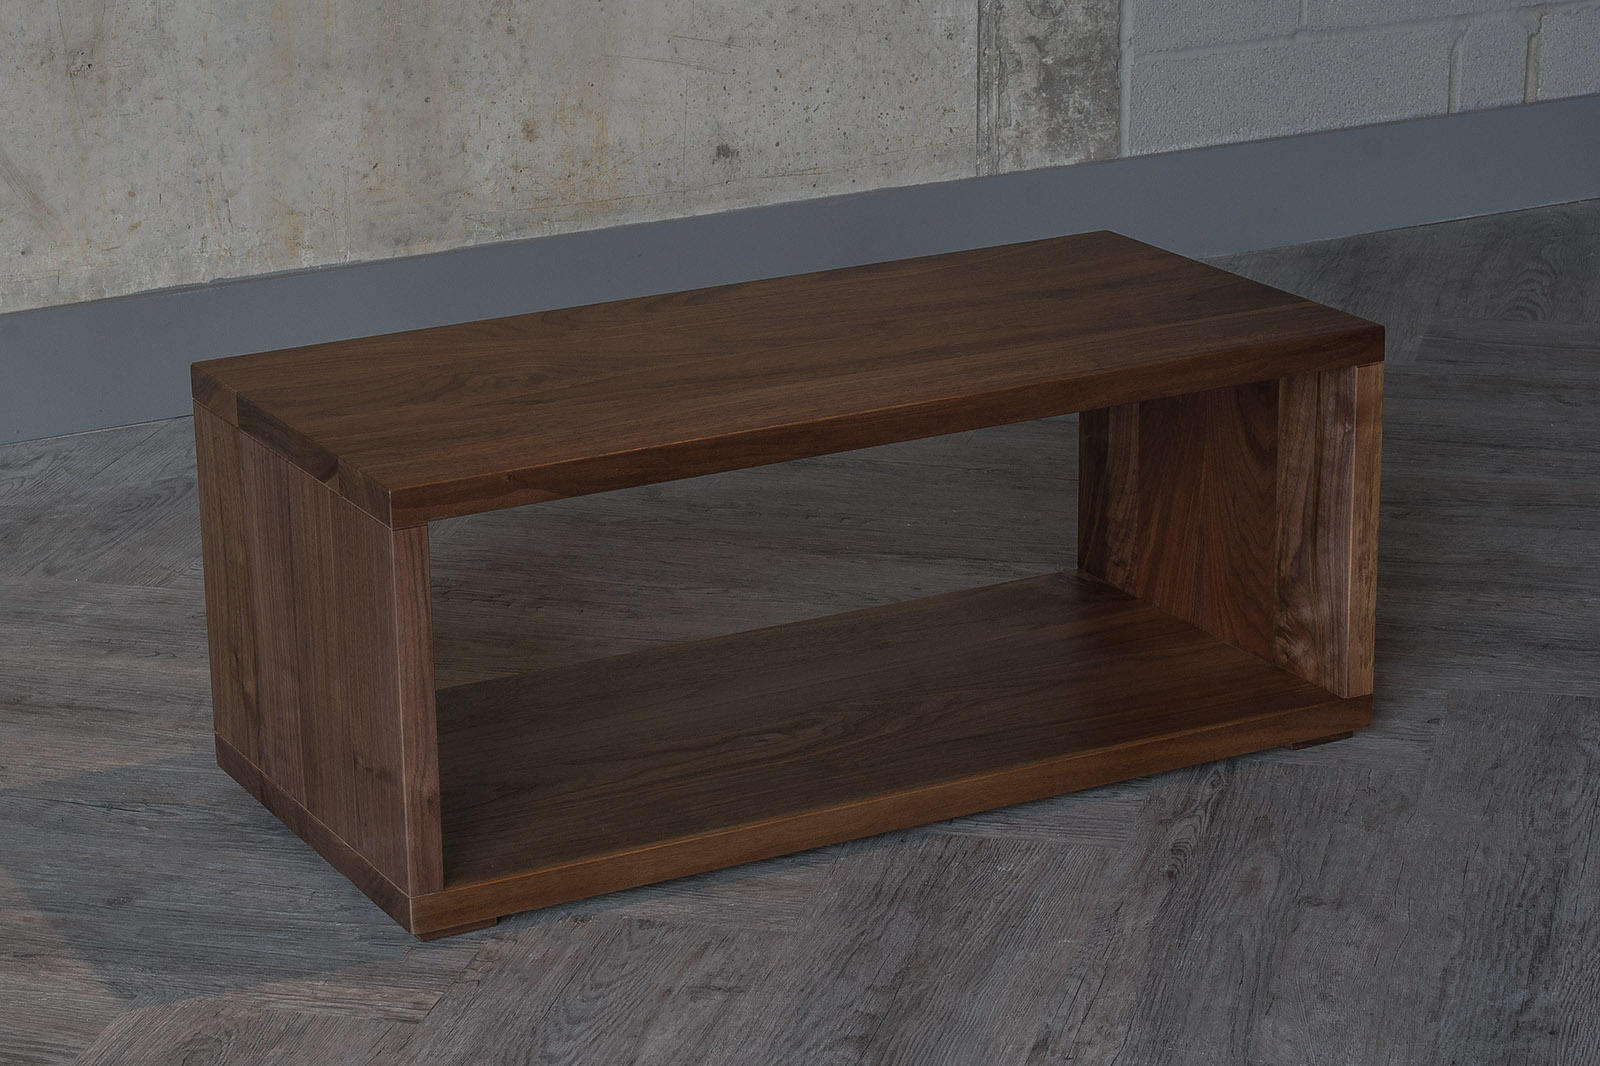 Wooden open shelf table or bench from the Cube collection and in Walnut